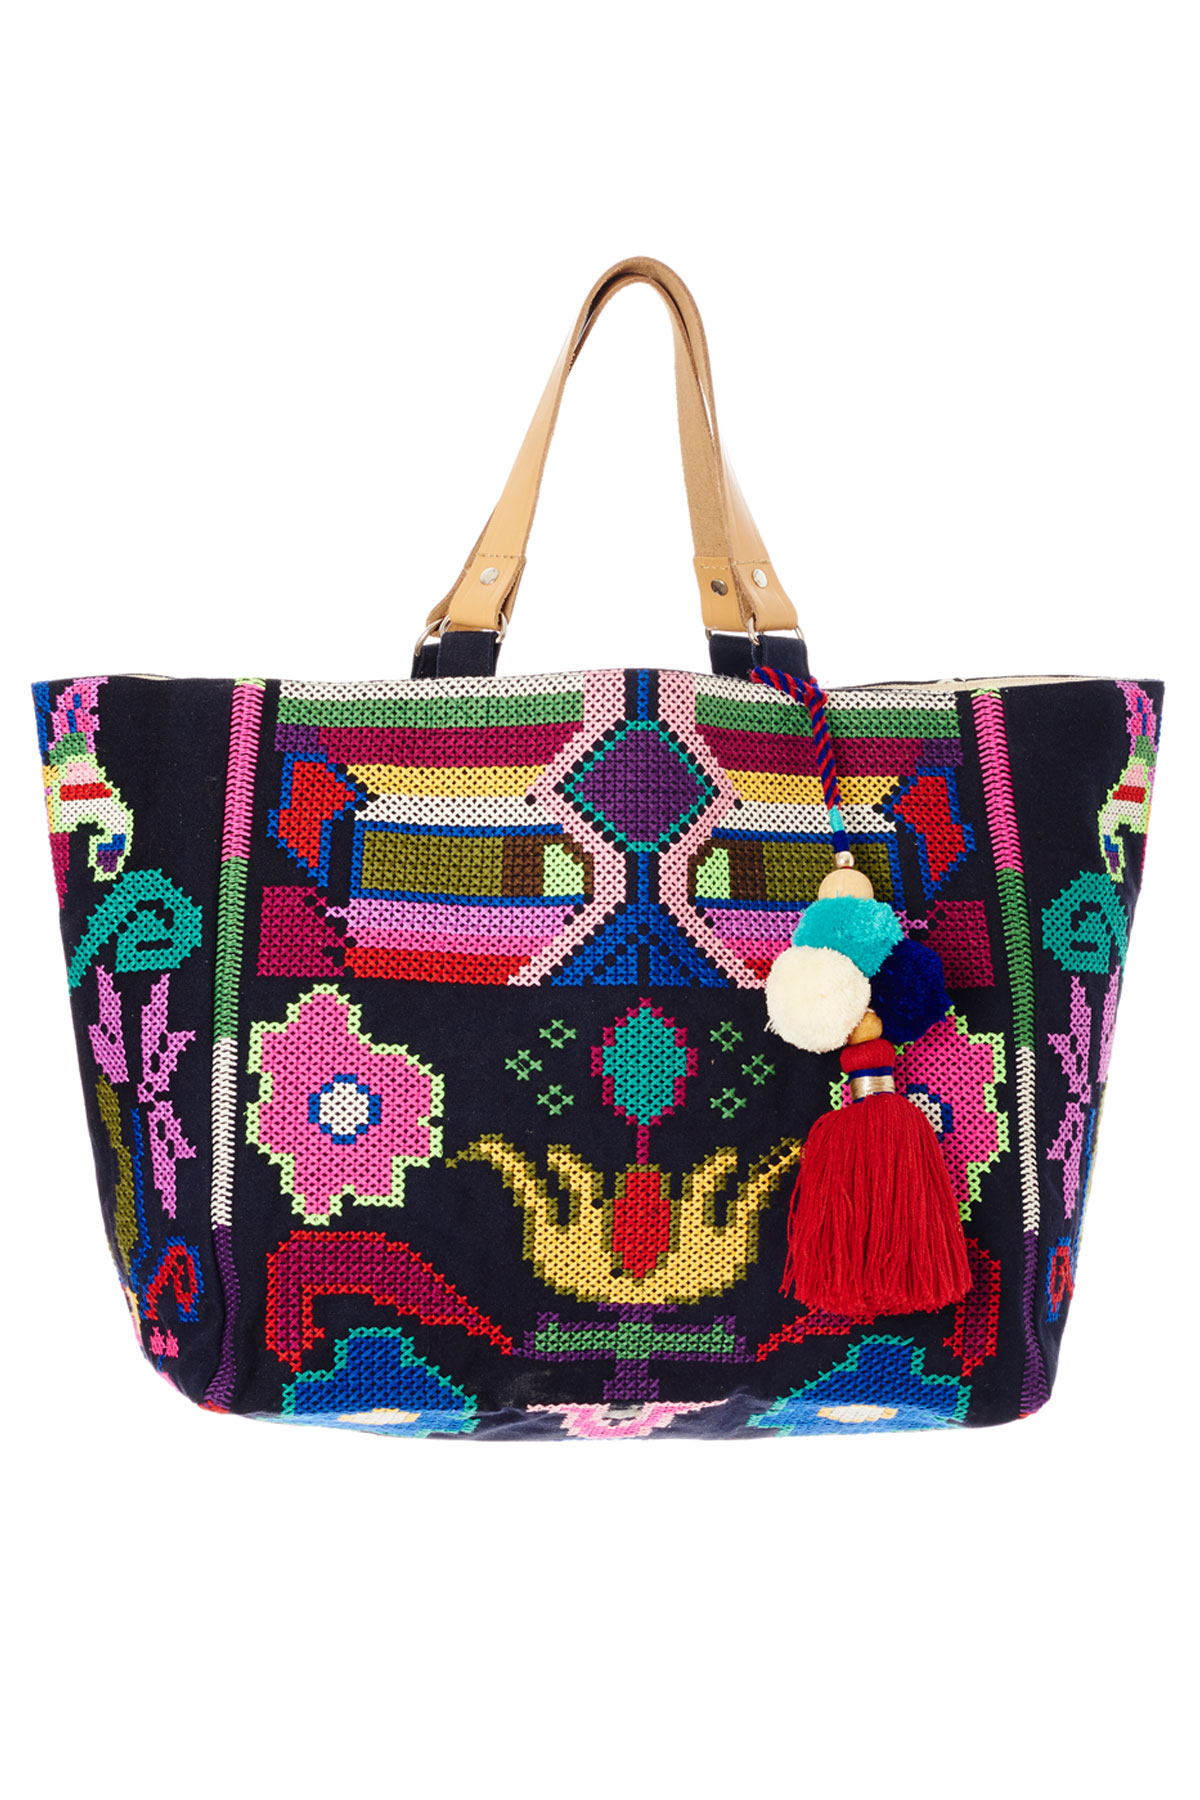 Vita Mexican Inspired Tote - Navy/Multi 1